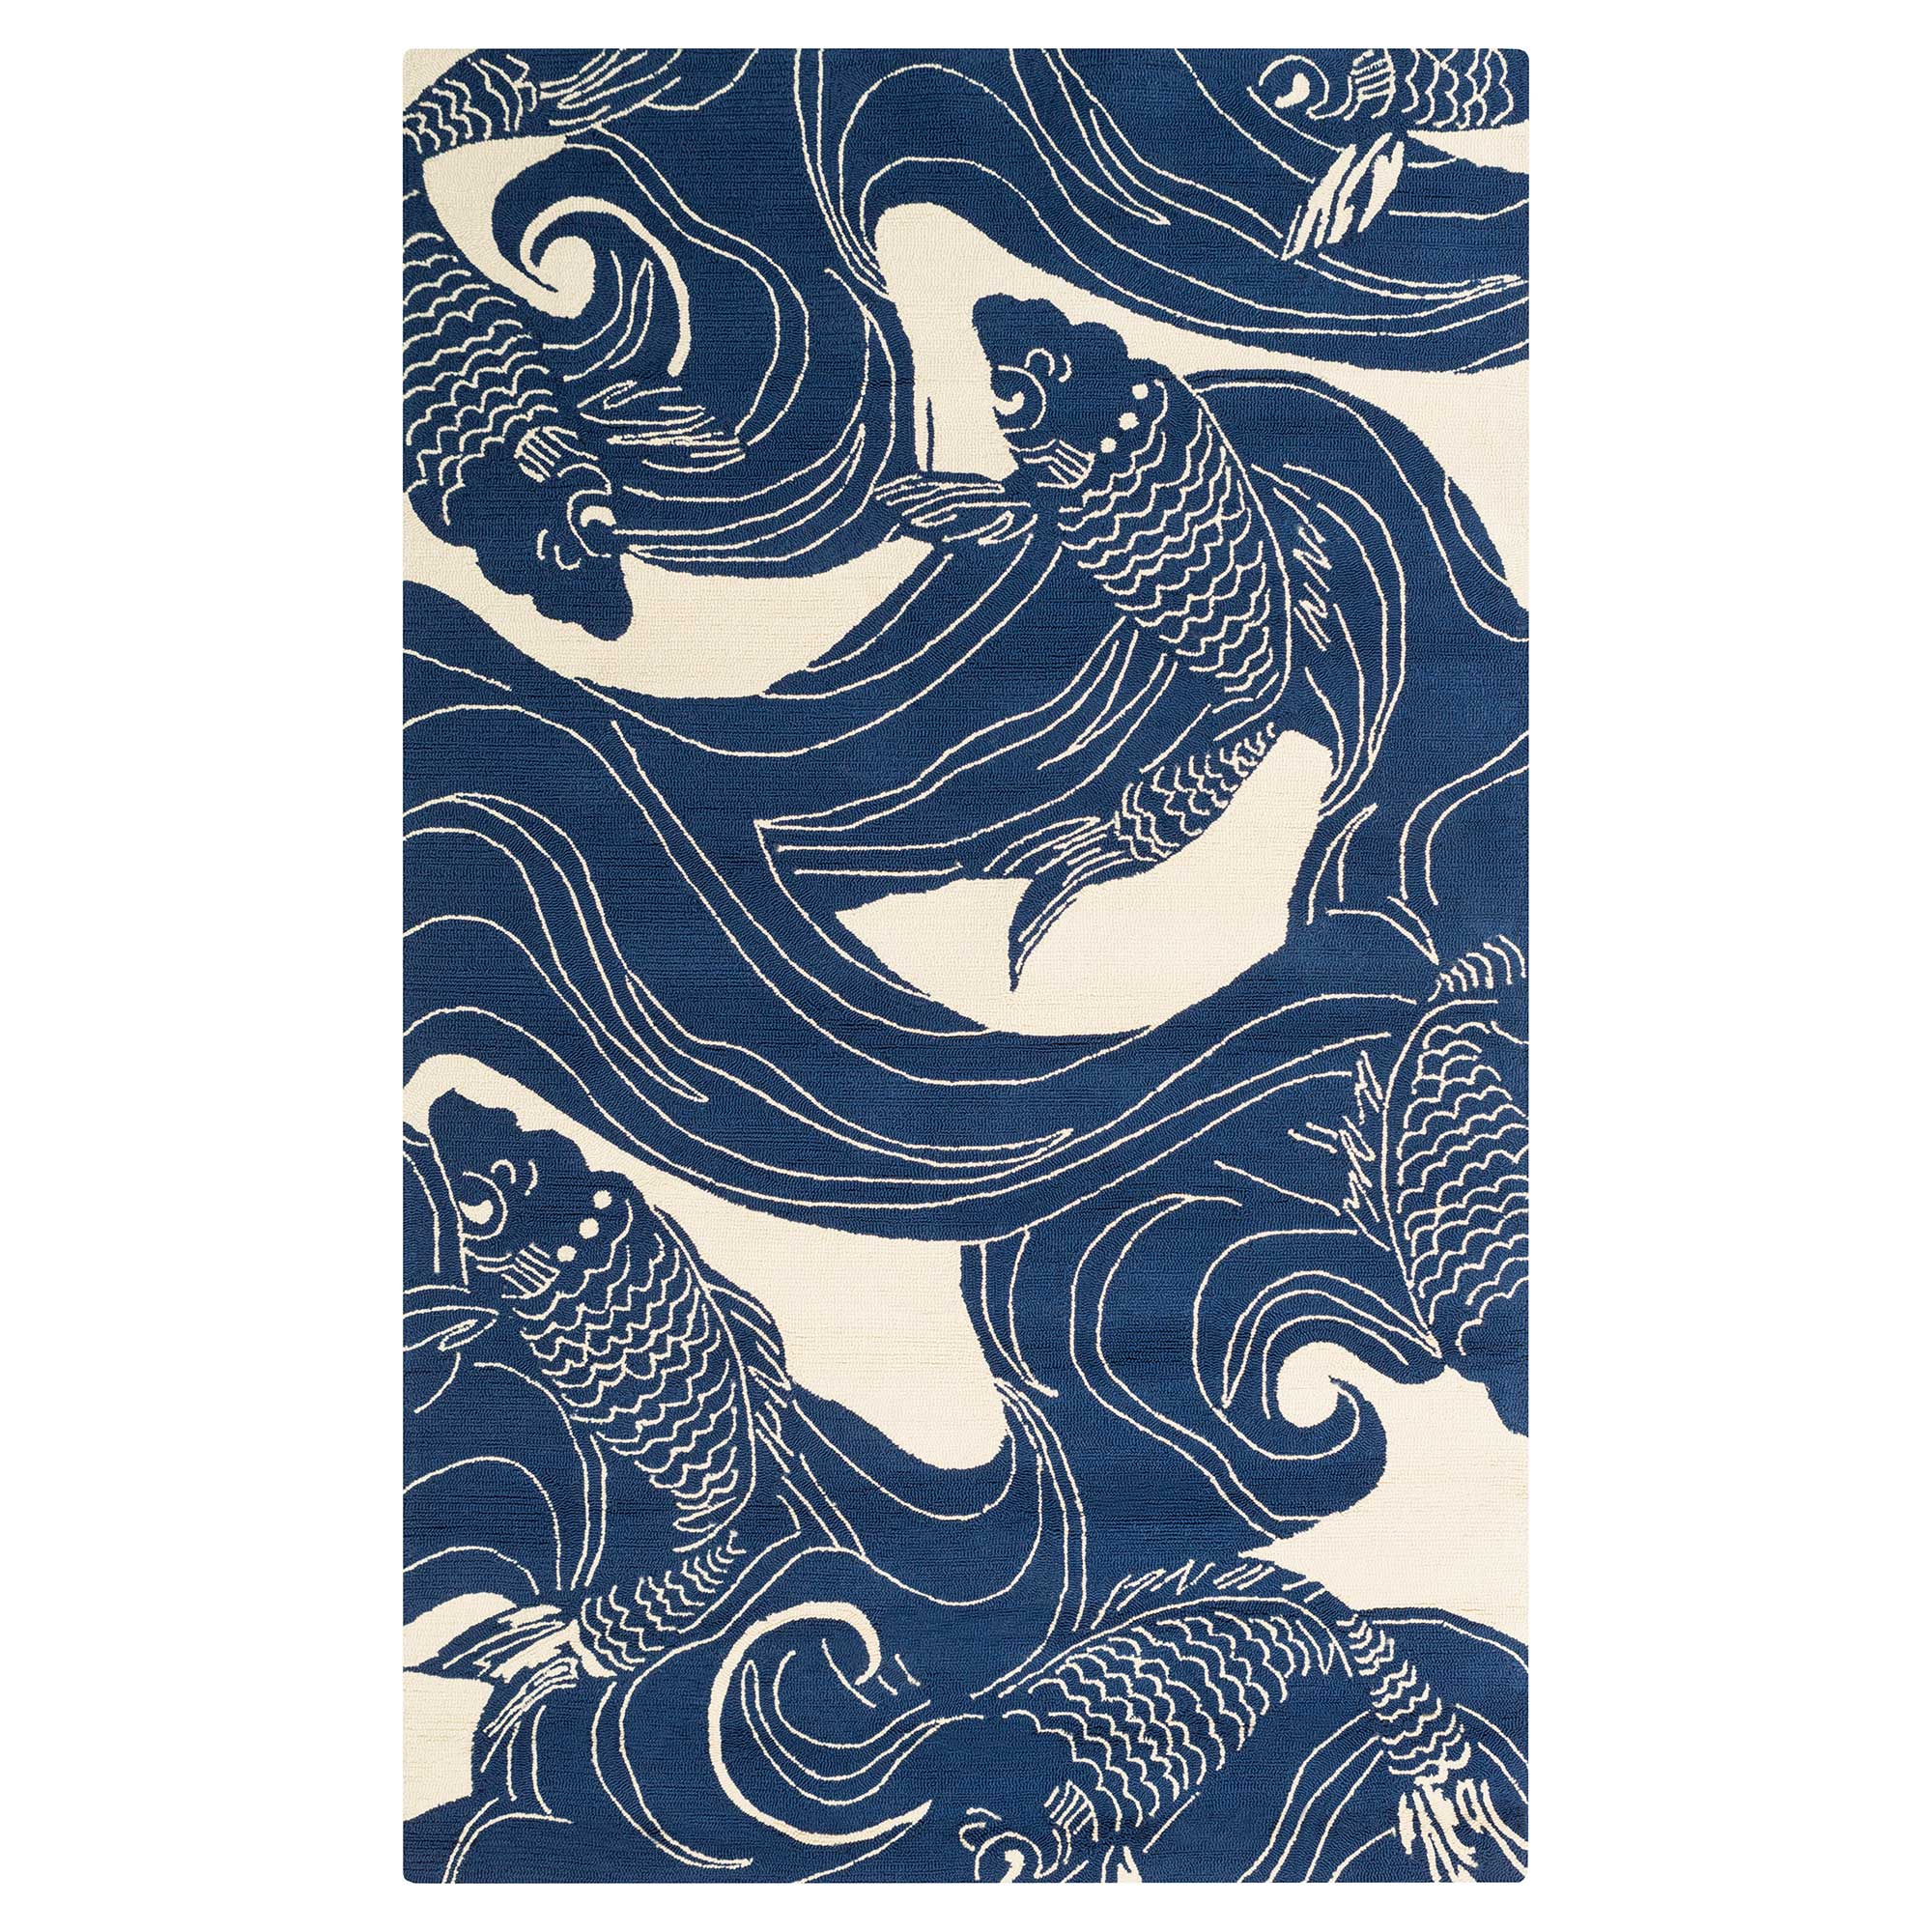 Kana Global Coastal Blue Ocean Koi Outdoor Rug - 5'x8'